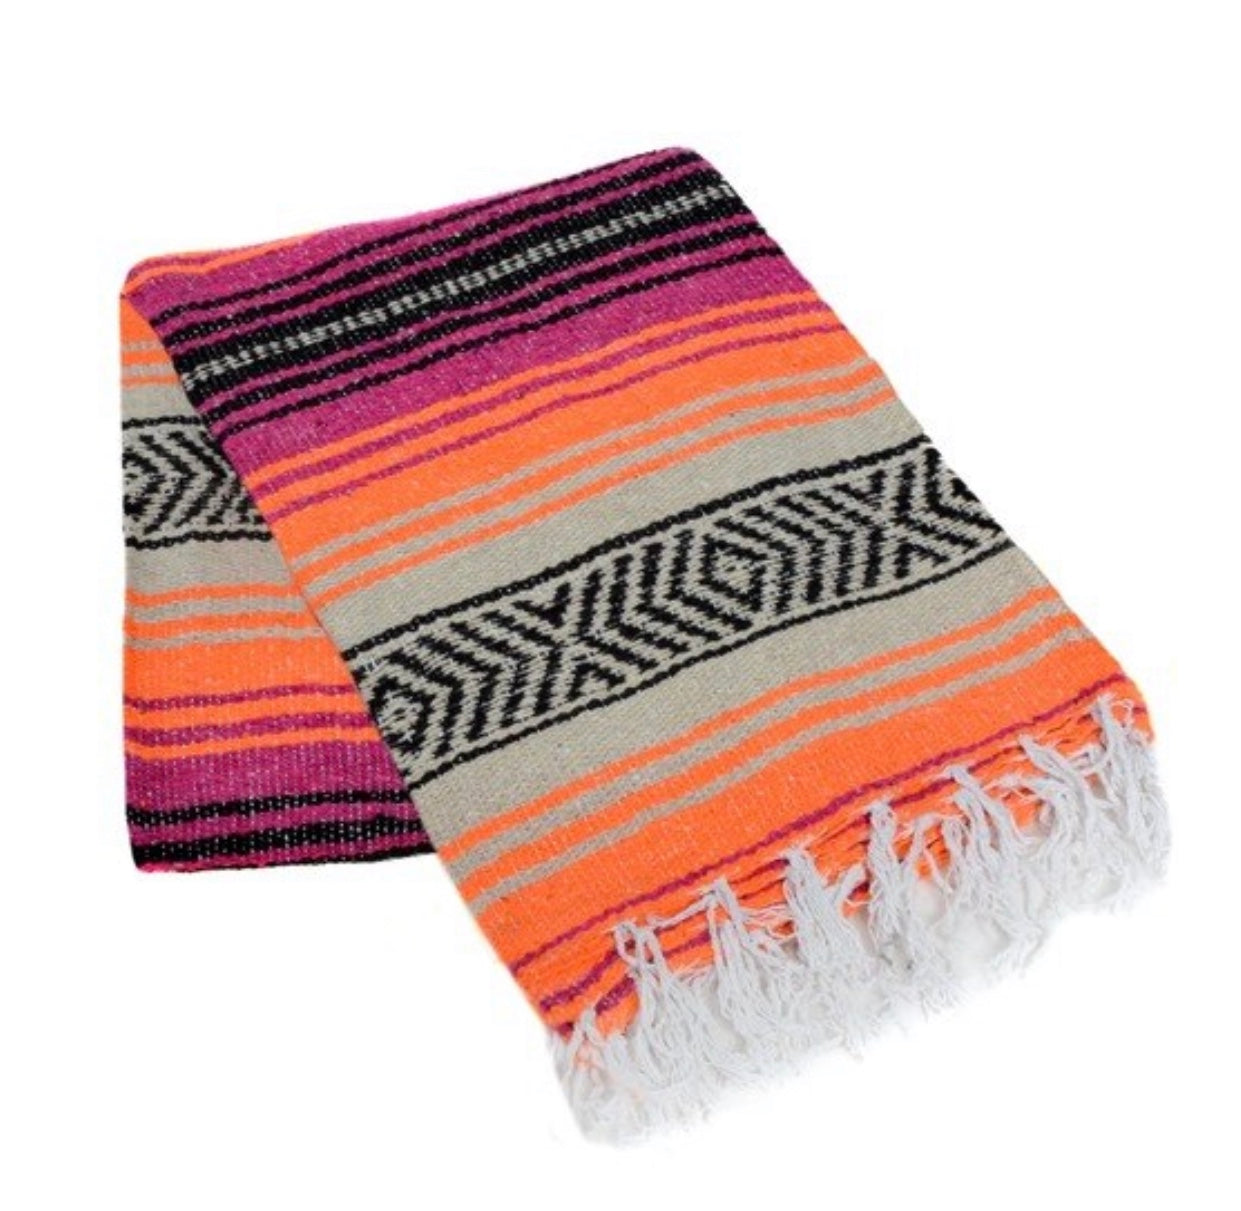 Radiate Positive Vibes Blanket︱✿ Free Shipping ✿